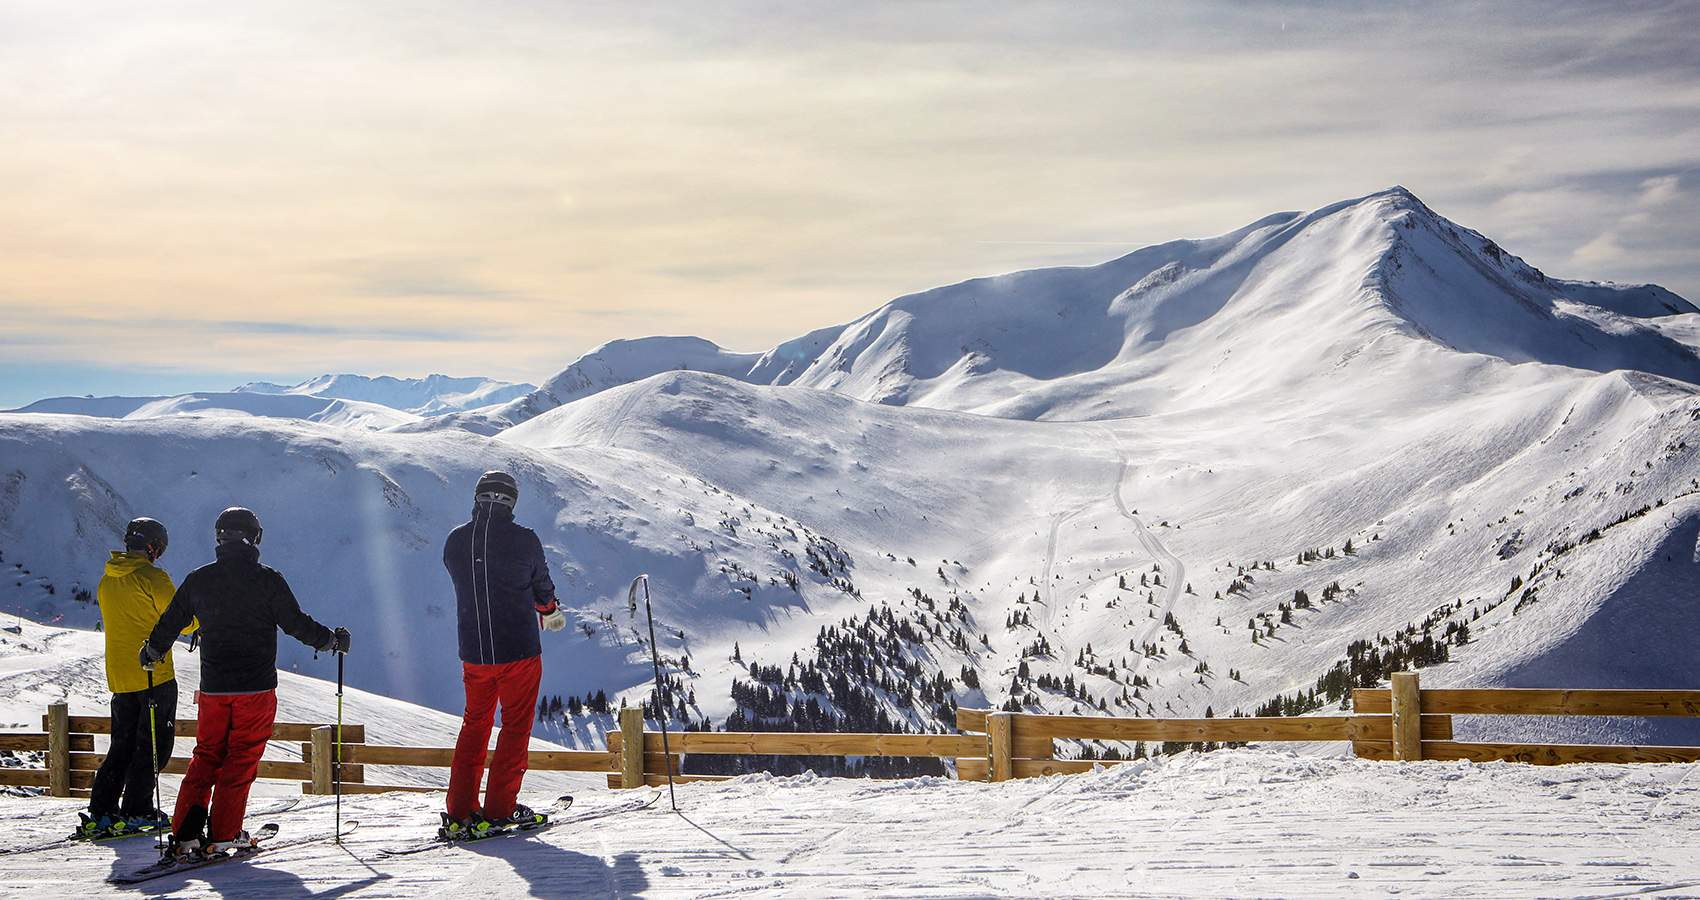 Planning Your Holiday Ski Trip to Albuquerque